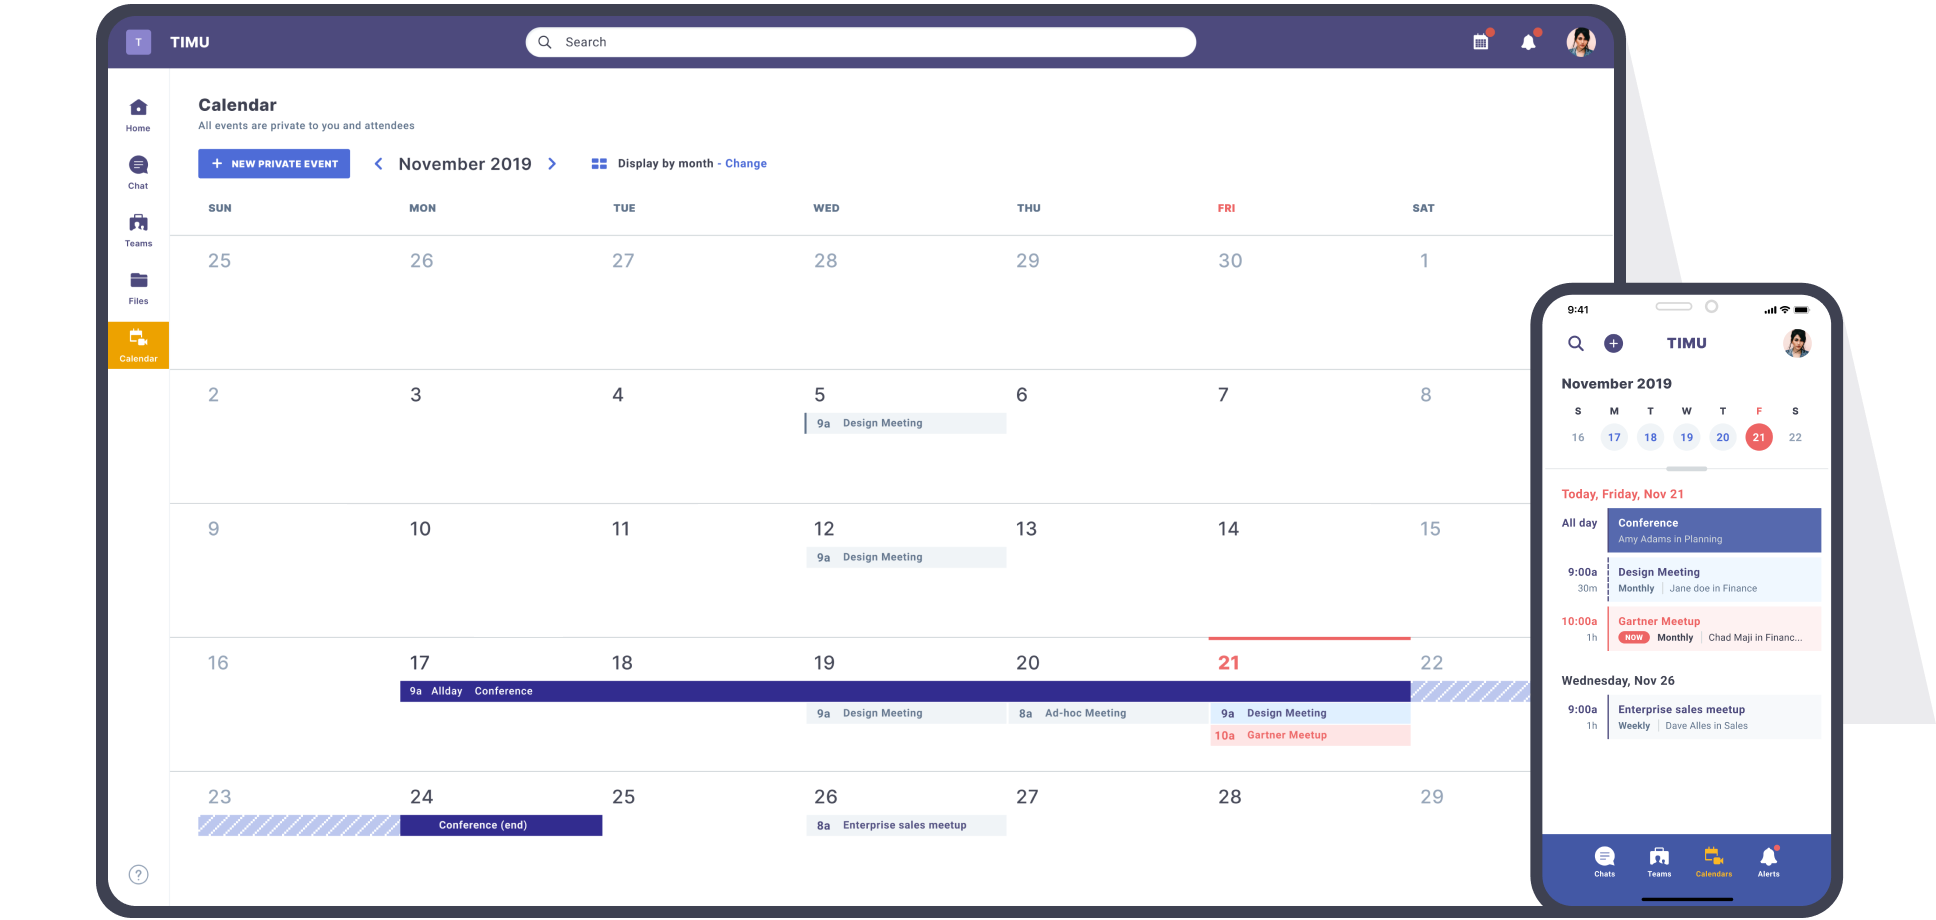 TIMU Product Calendar for Web, Desktop & Mobile